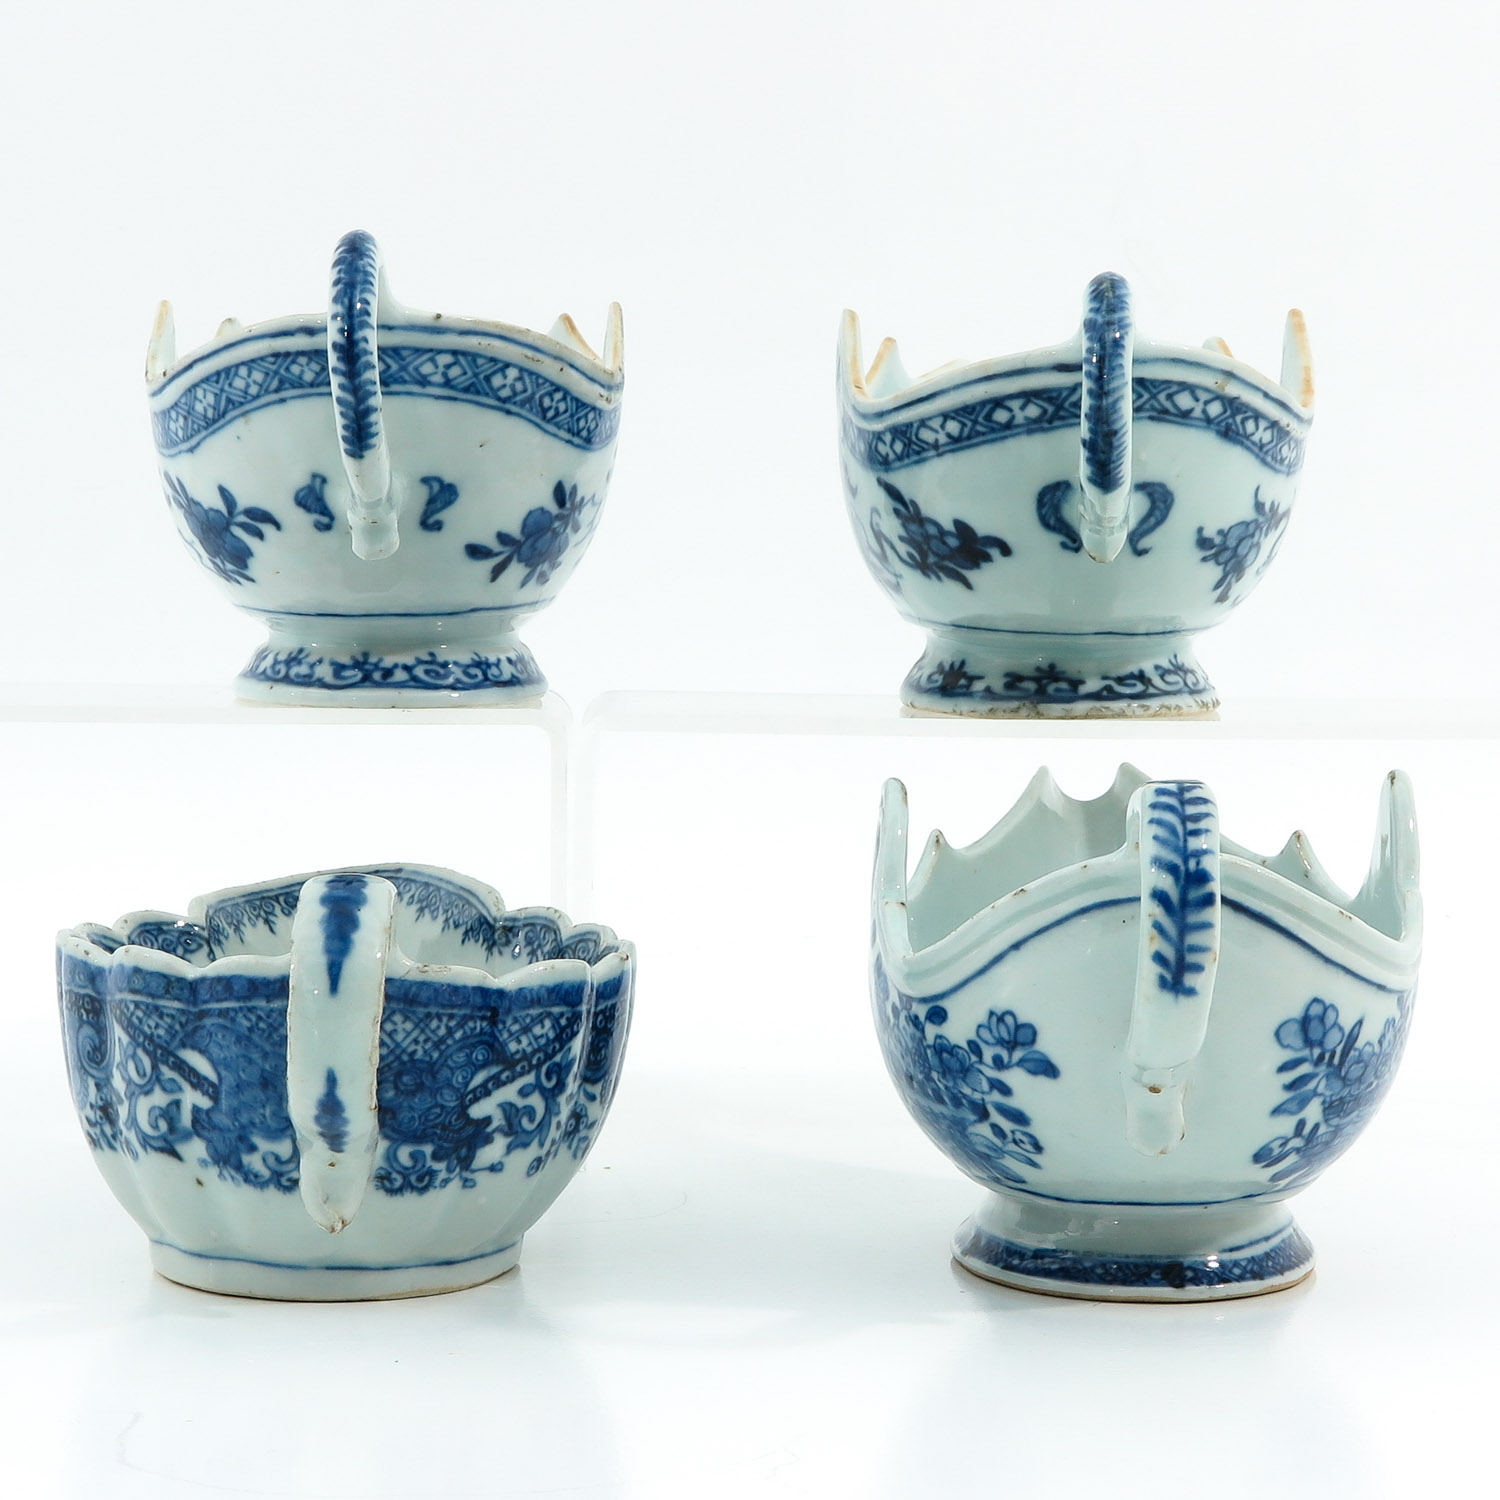 A Collection of Export Porcelain - Image 2 of 9